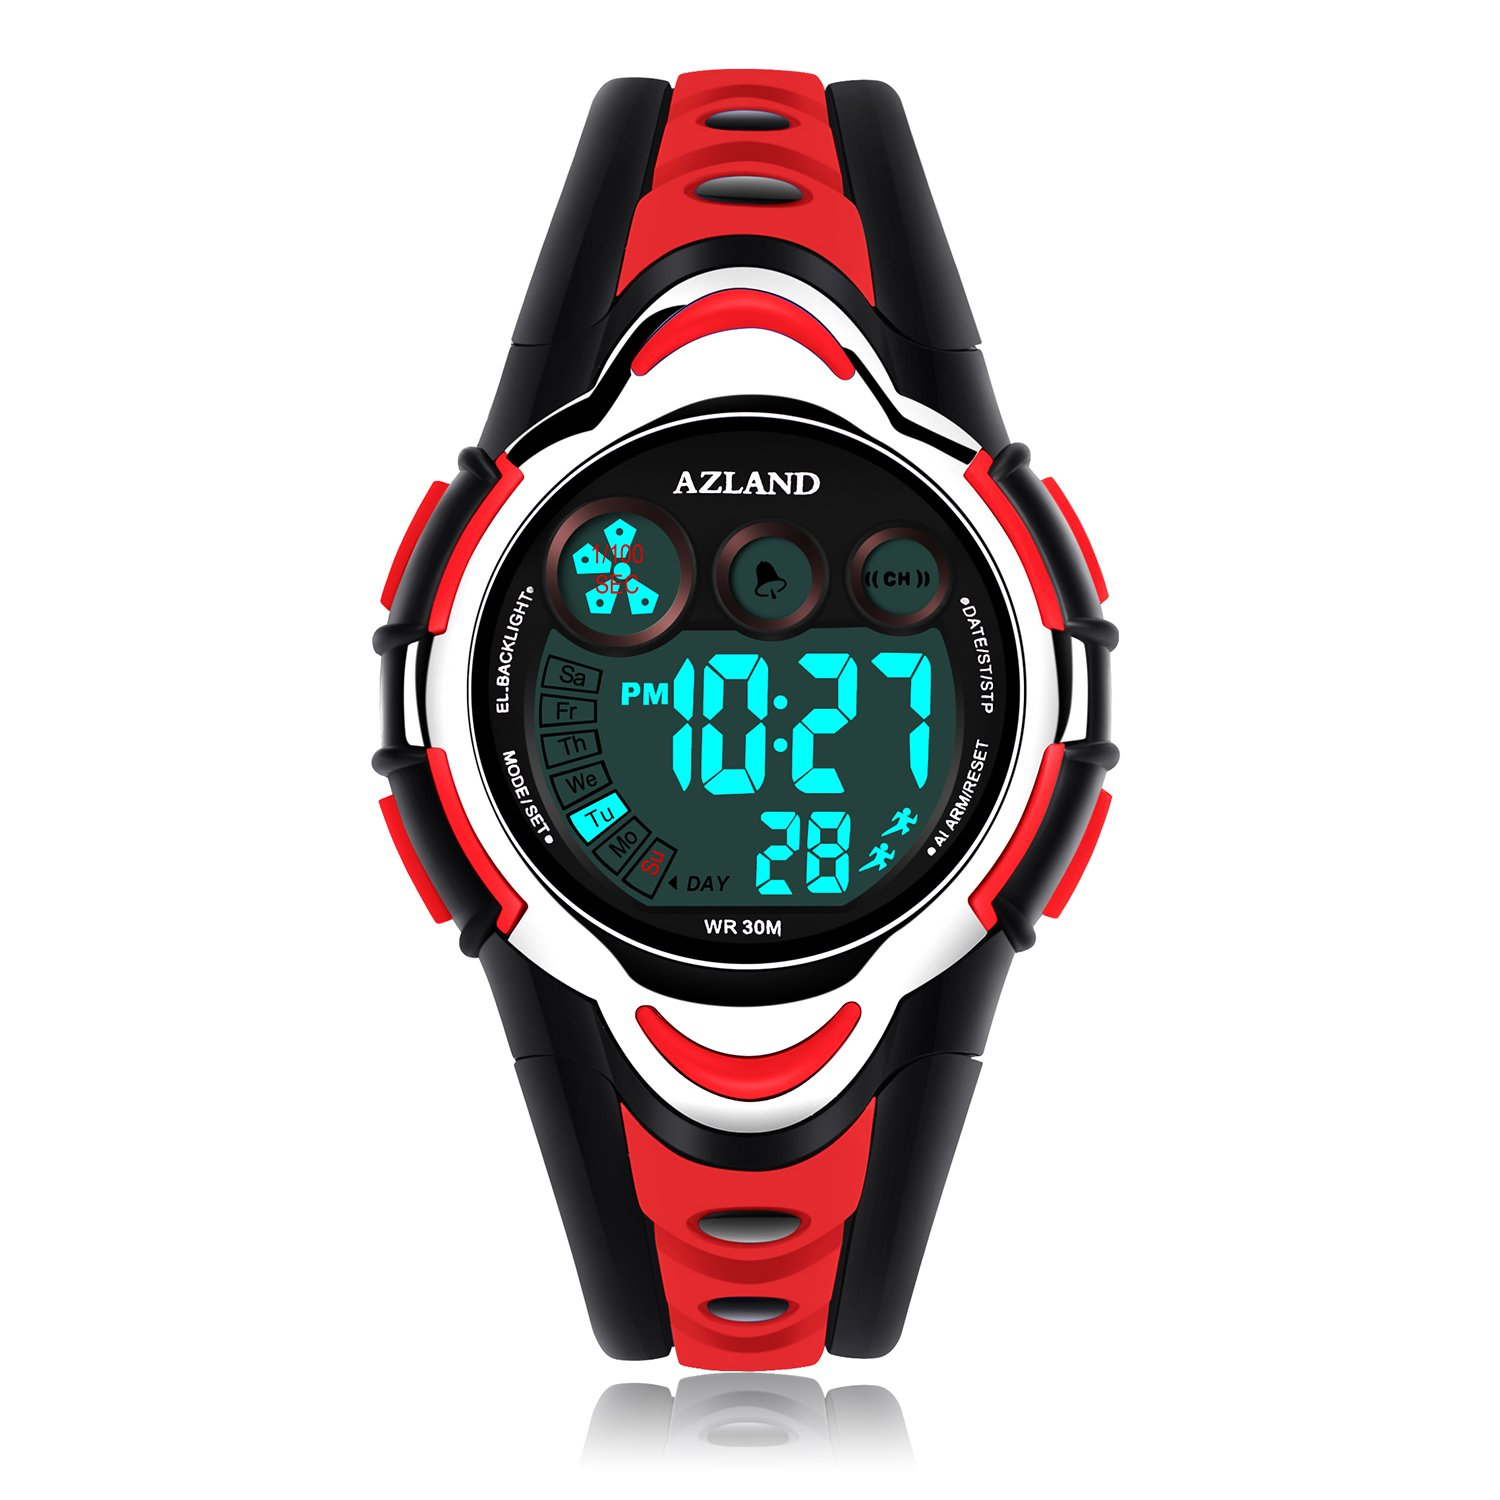 mall digital watches old for waterproof boys amazon girls childrens brand new national blue sports com clothing dp geographic years kids